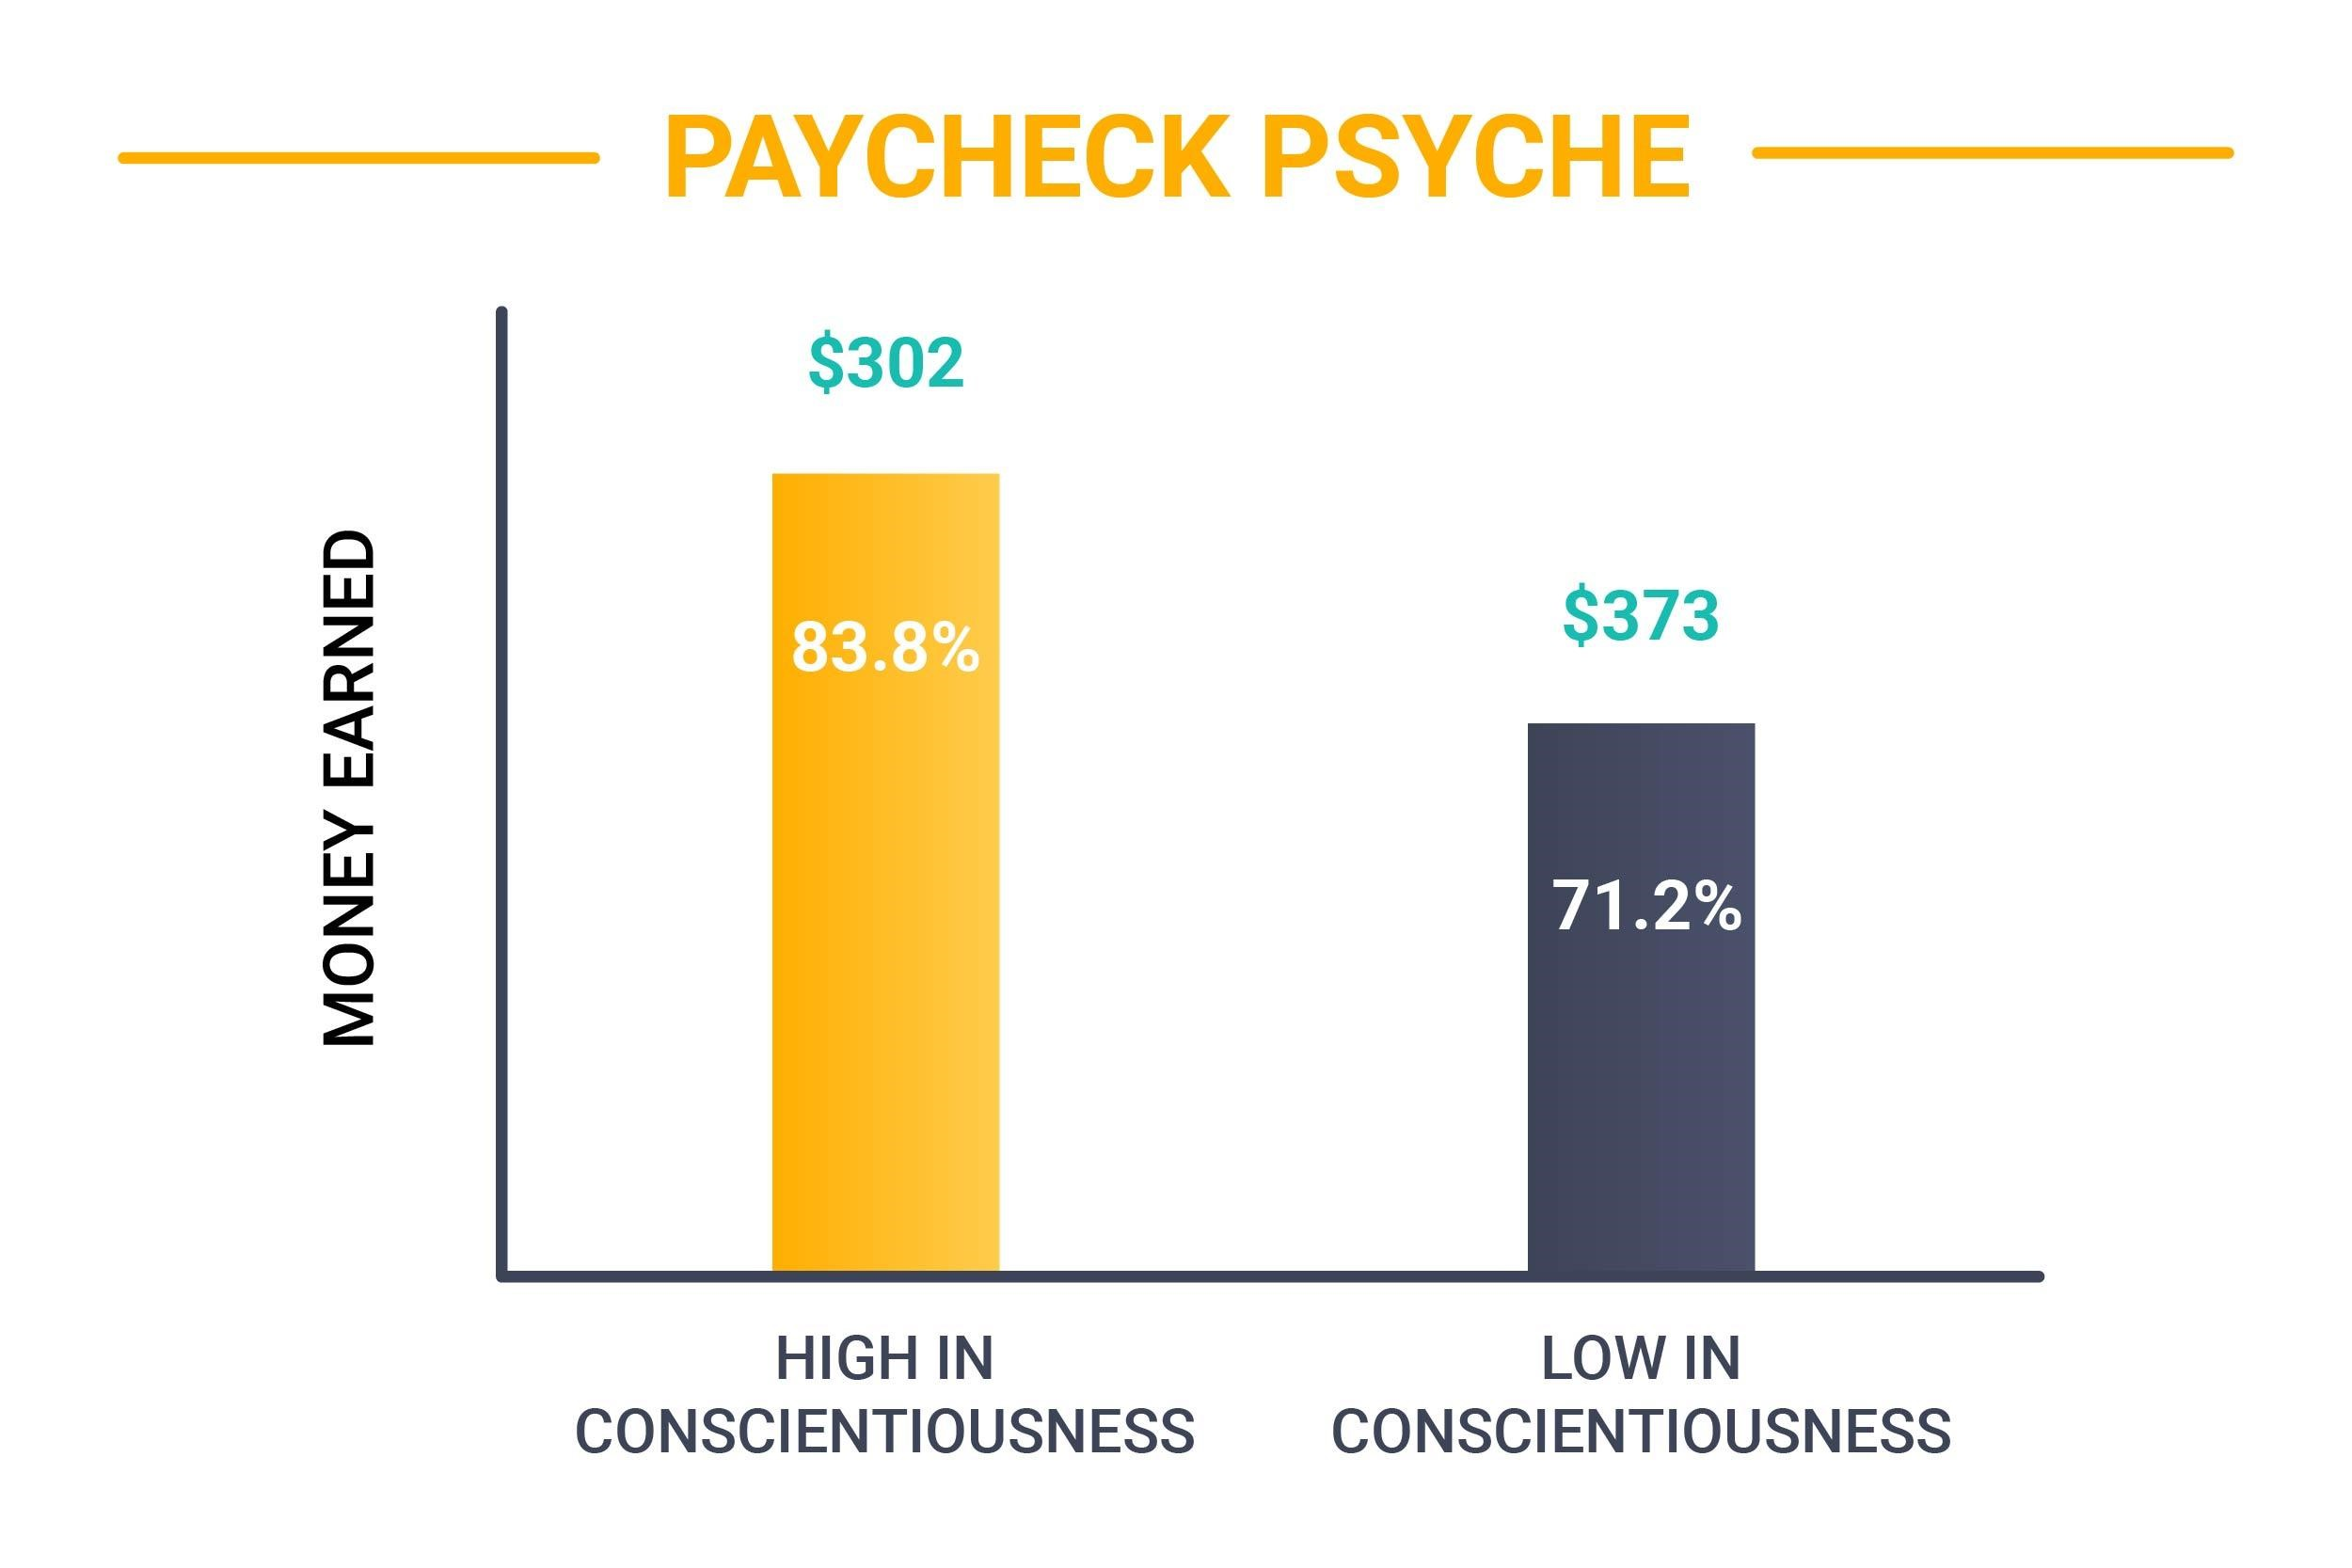 money earned vs conscientiousness level